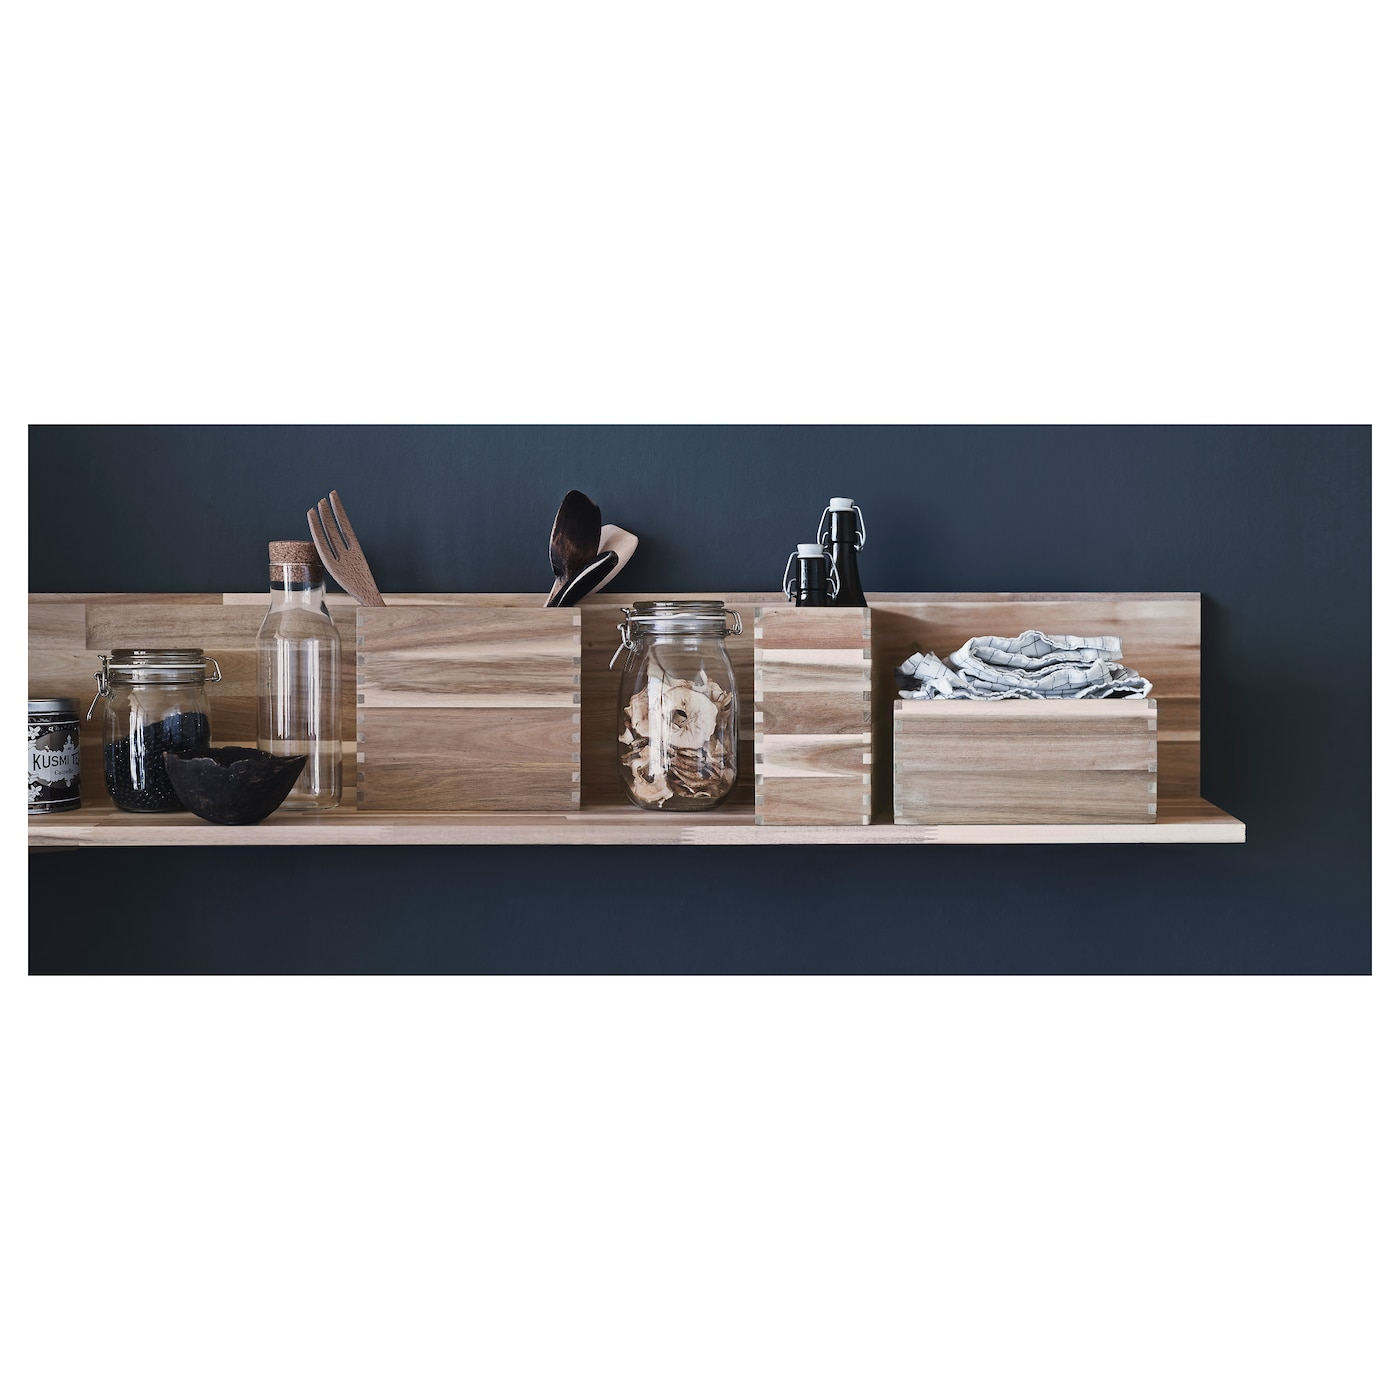 Skogsta wall shelf acacia 120x25 cm ikea ikea skogsta wall shelf solid wood is a durable natural material amipublicfo Gallery